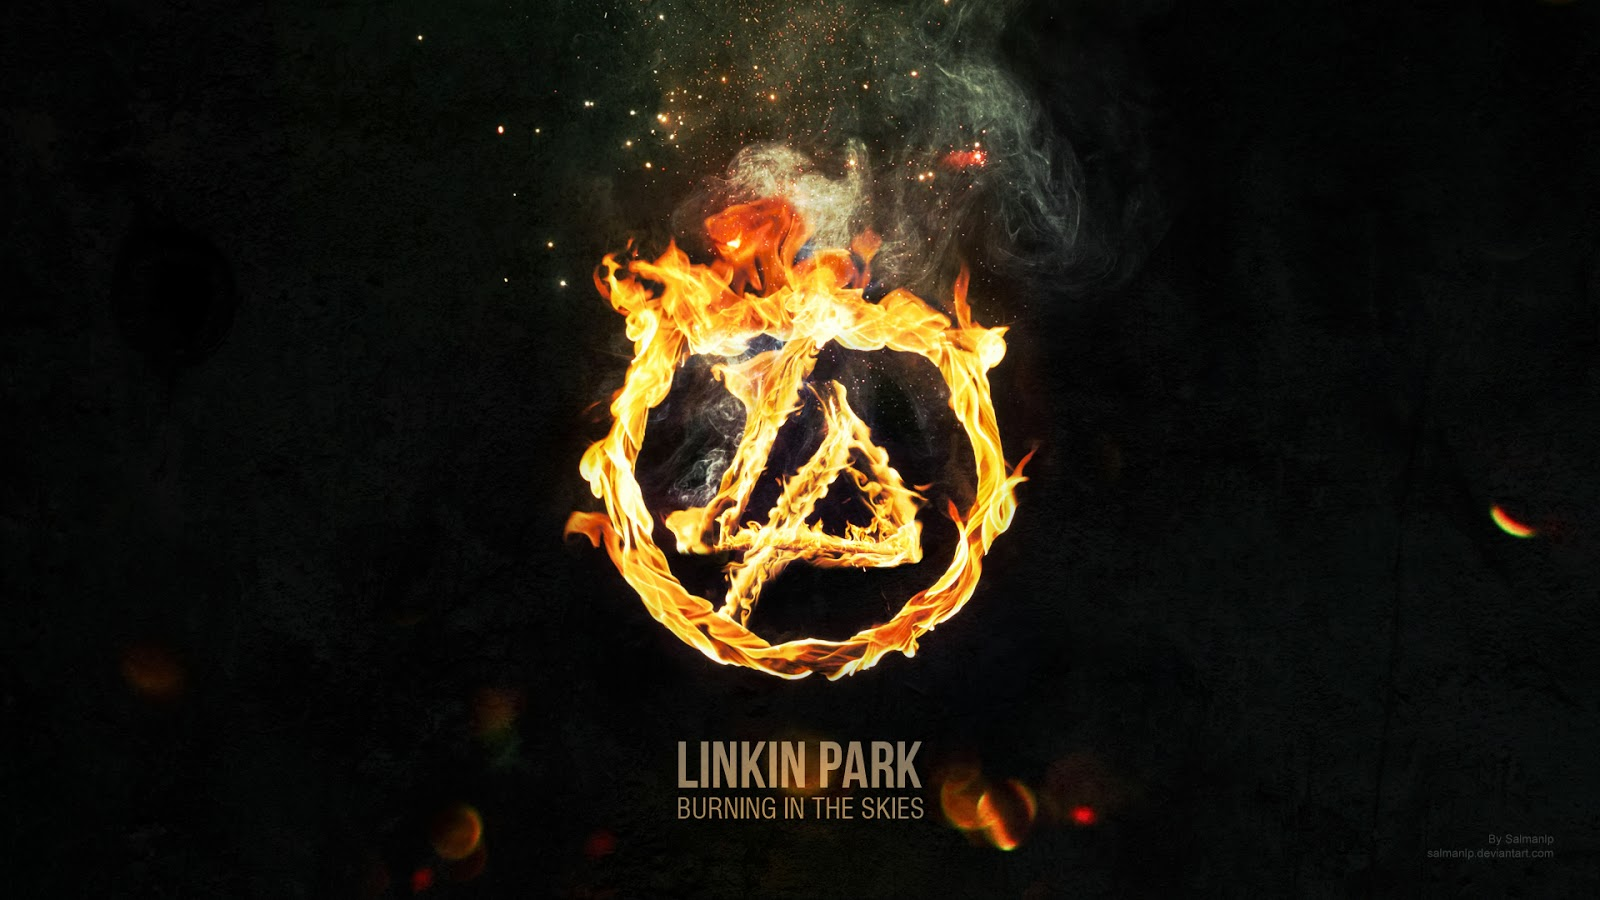 linkin park burning in the skies wallpapers - Linkin Park Burning in the Skies Wallpapers HD Wallpapers